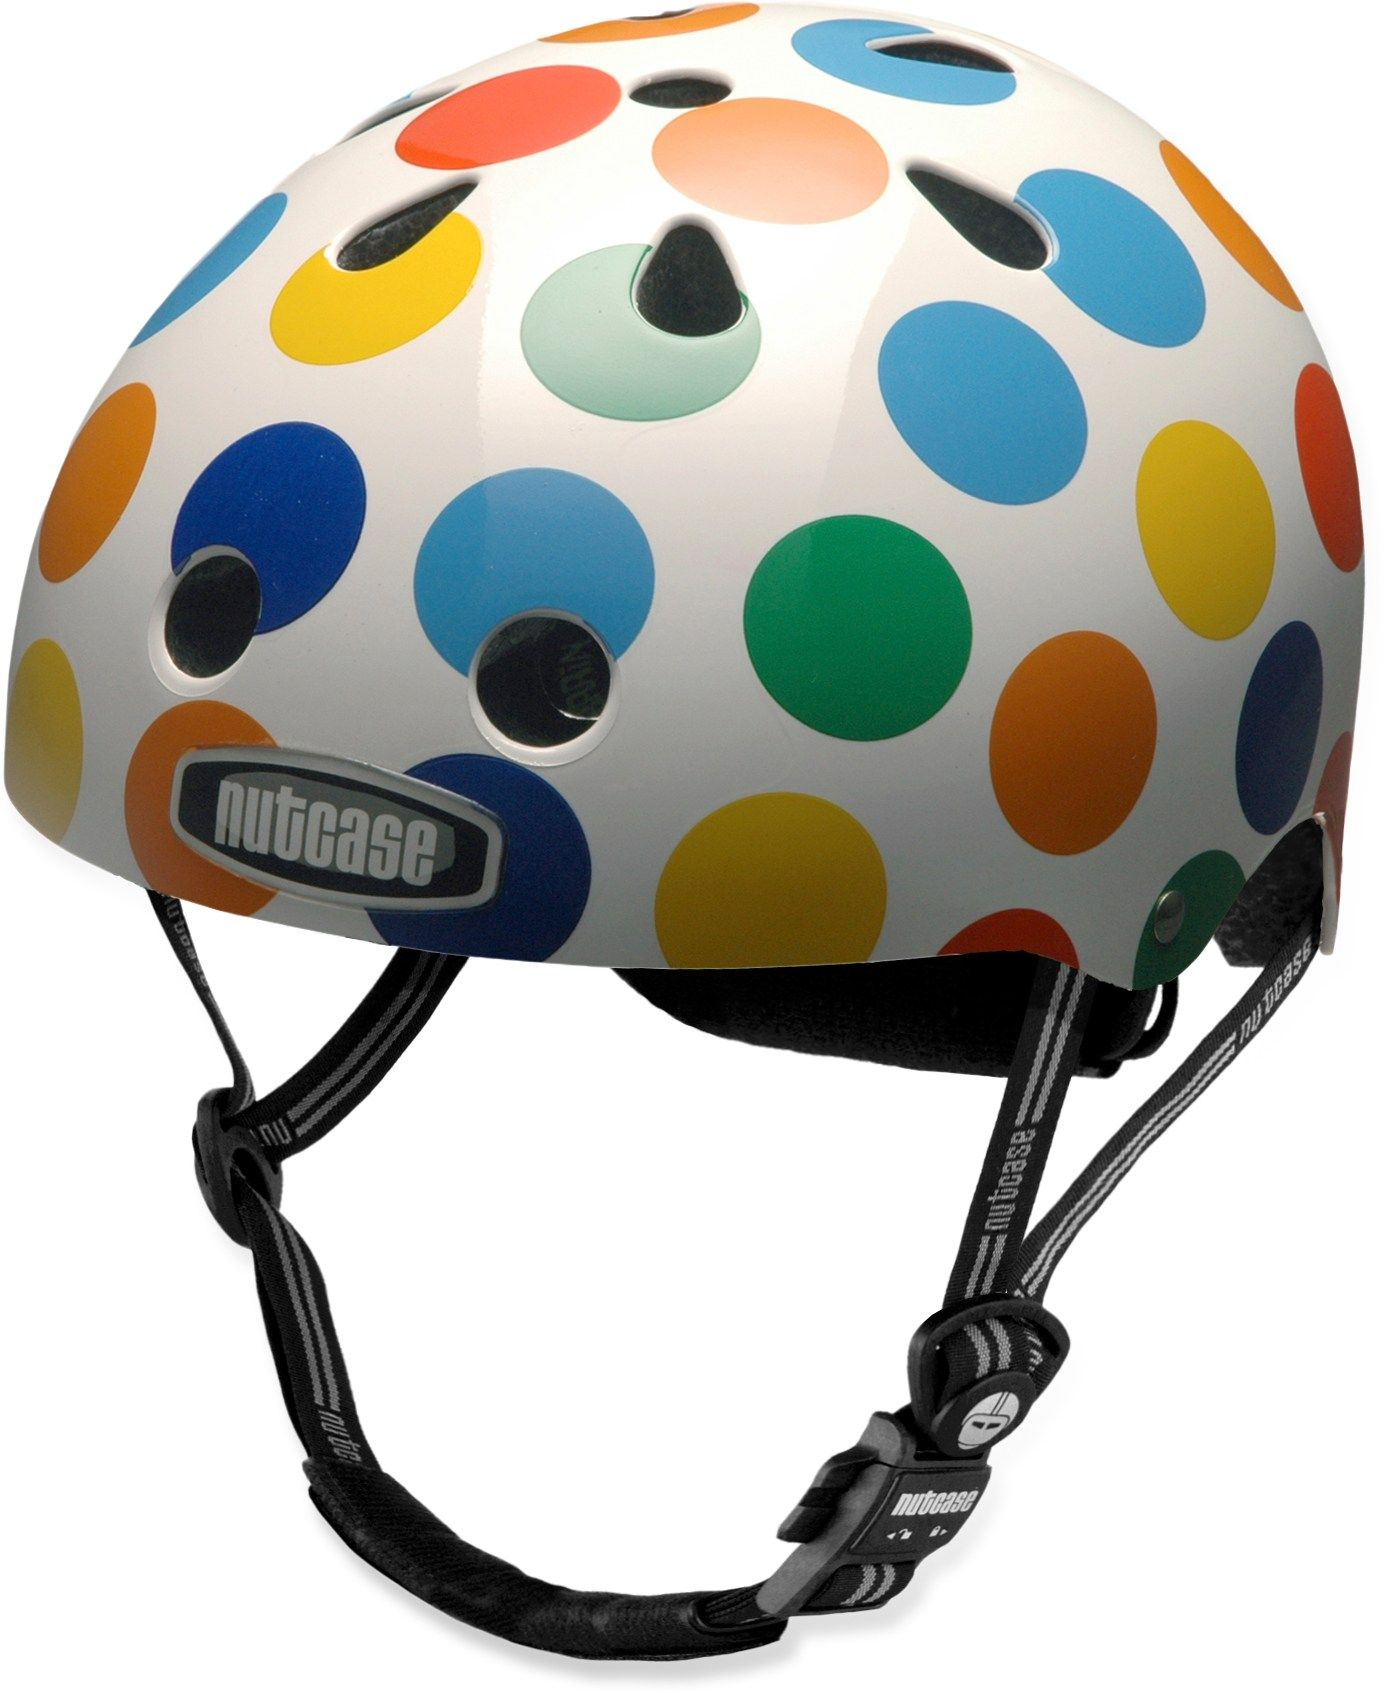 Nutcase Bike Helmet Women S Kids Bike Helmet Bike Helmet